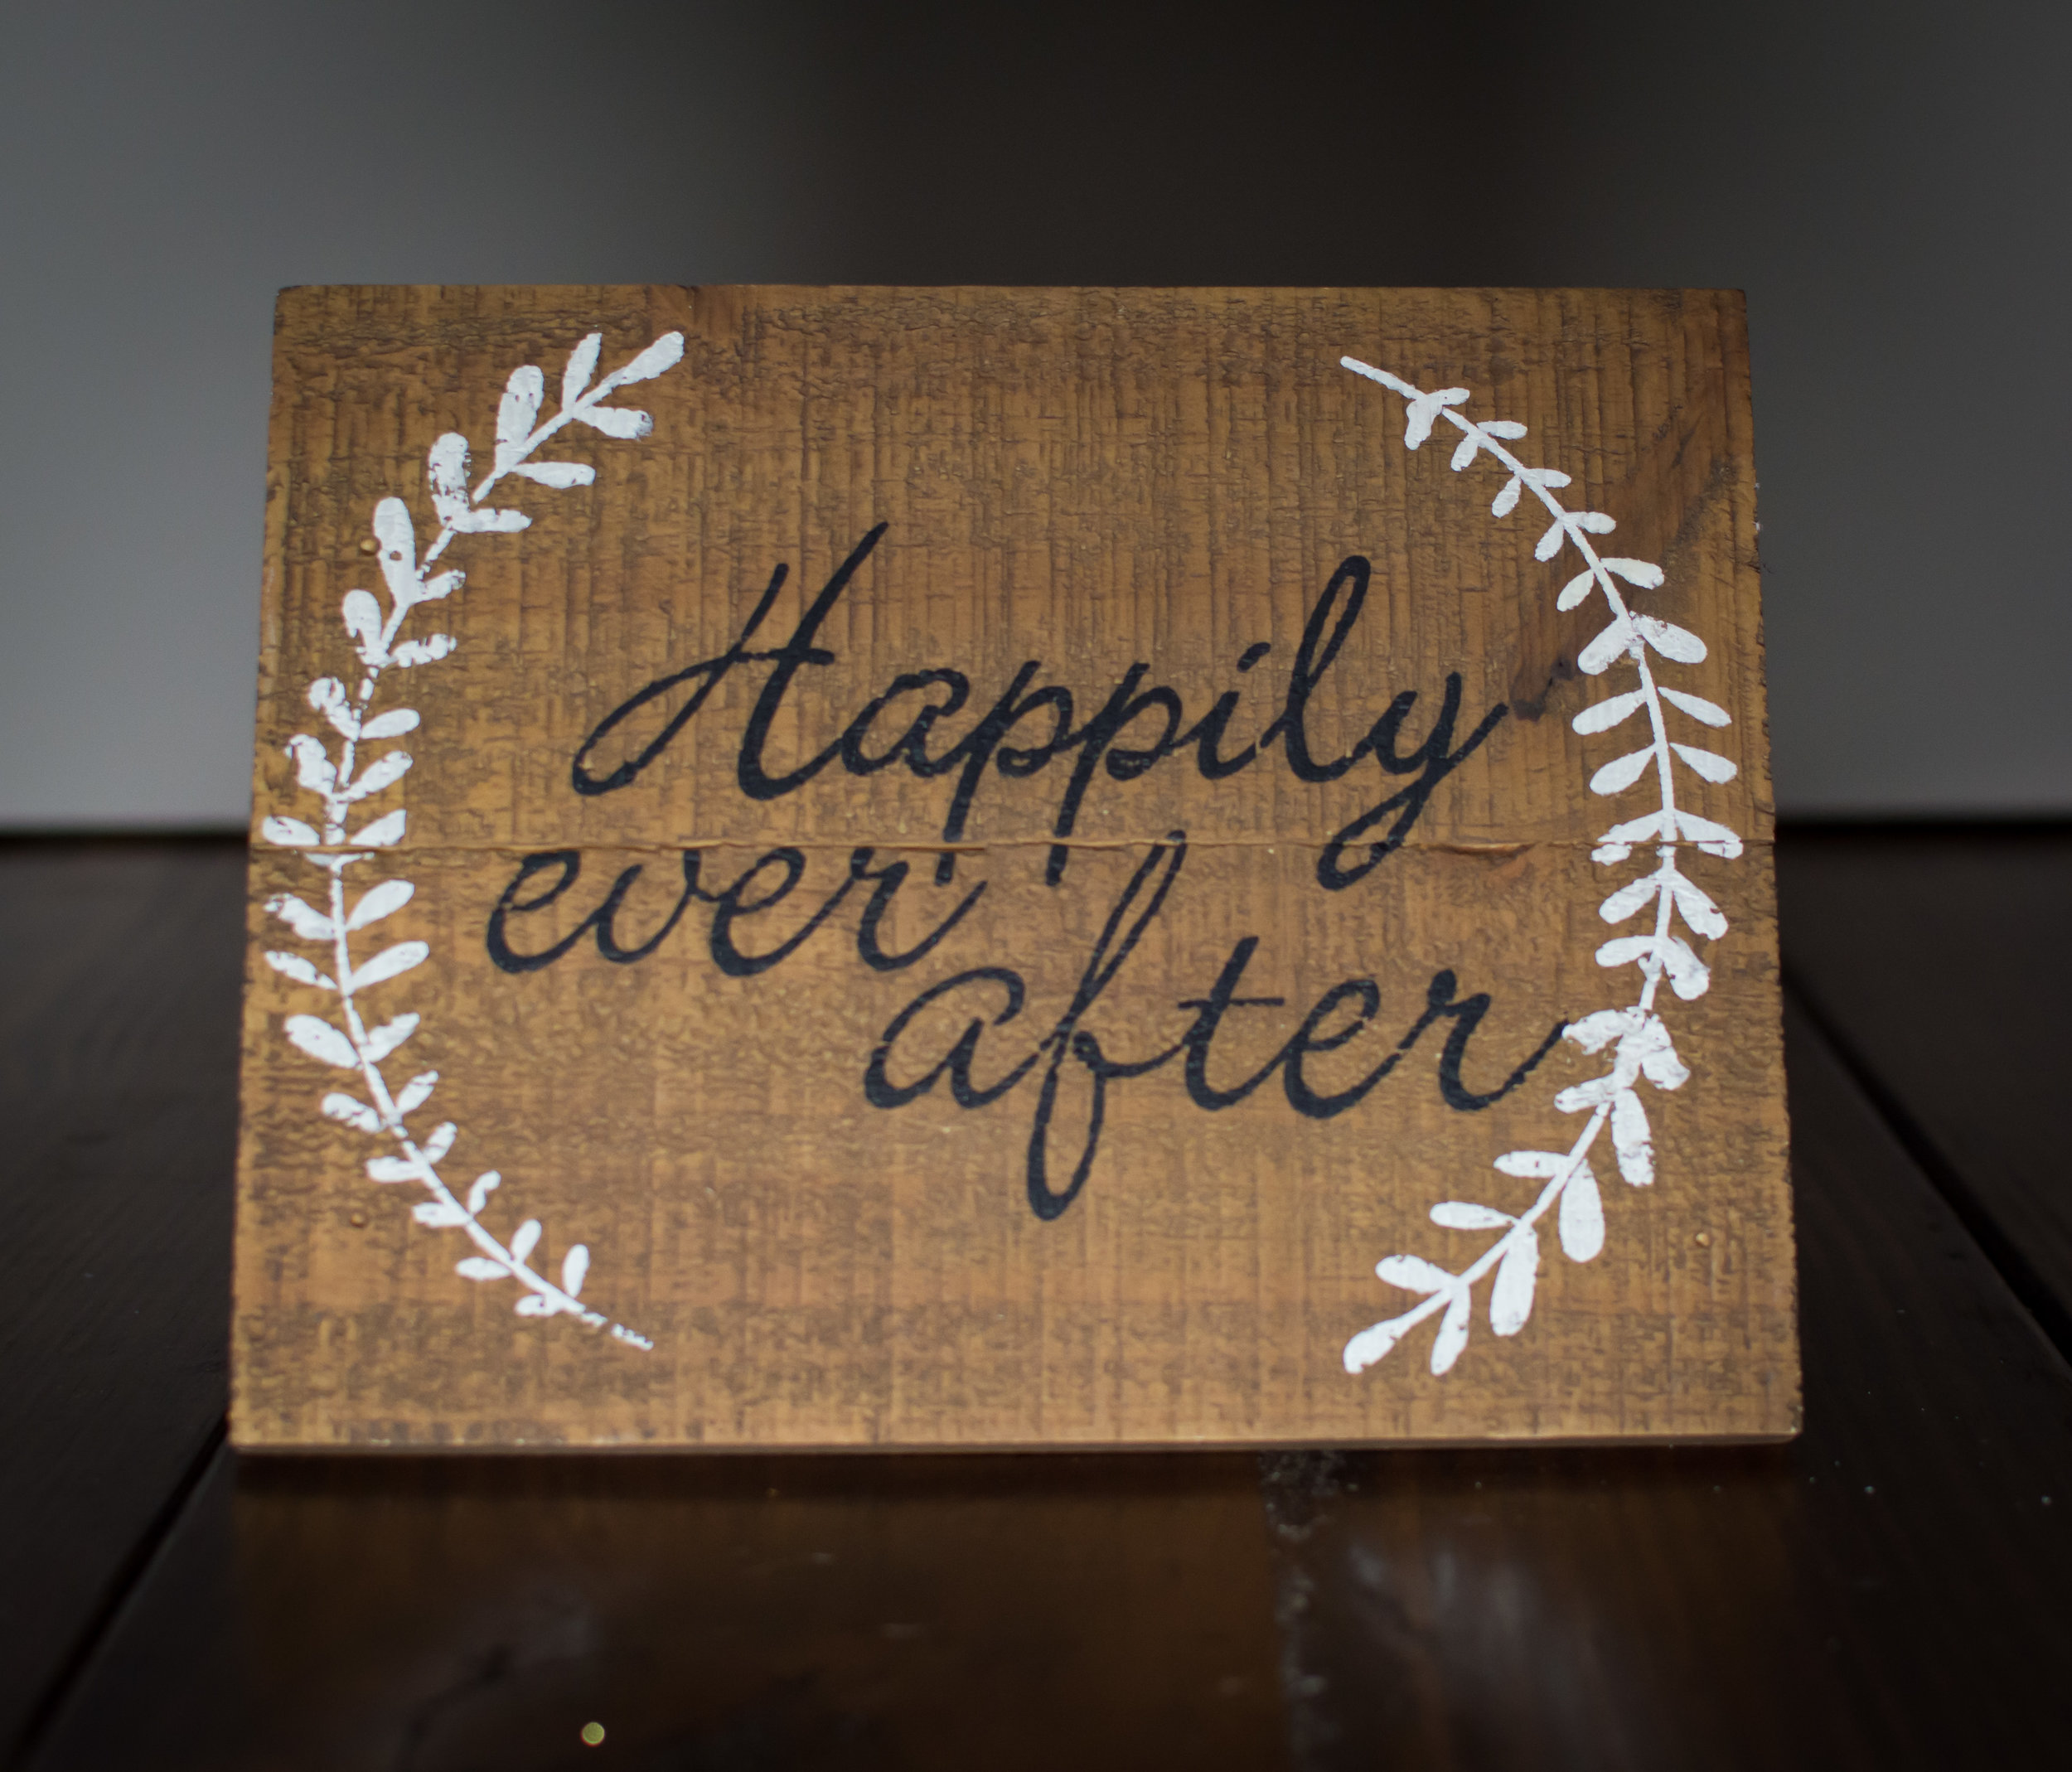 happily ever after sign   Size-  Price: $5.00  Inquire about quantity and availability.